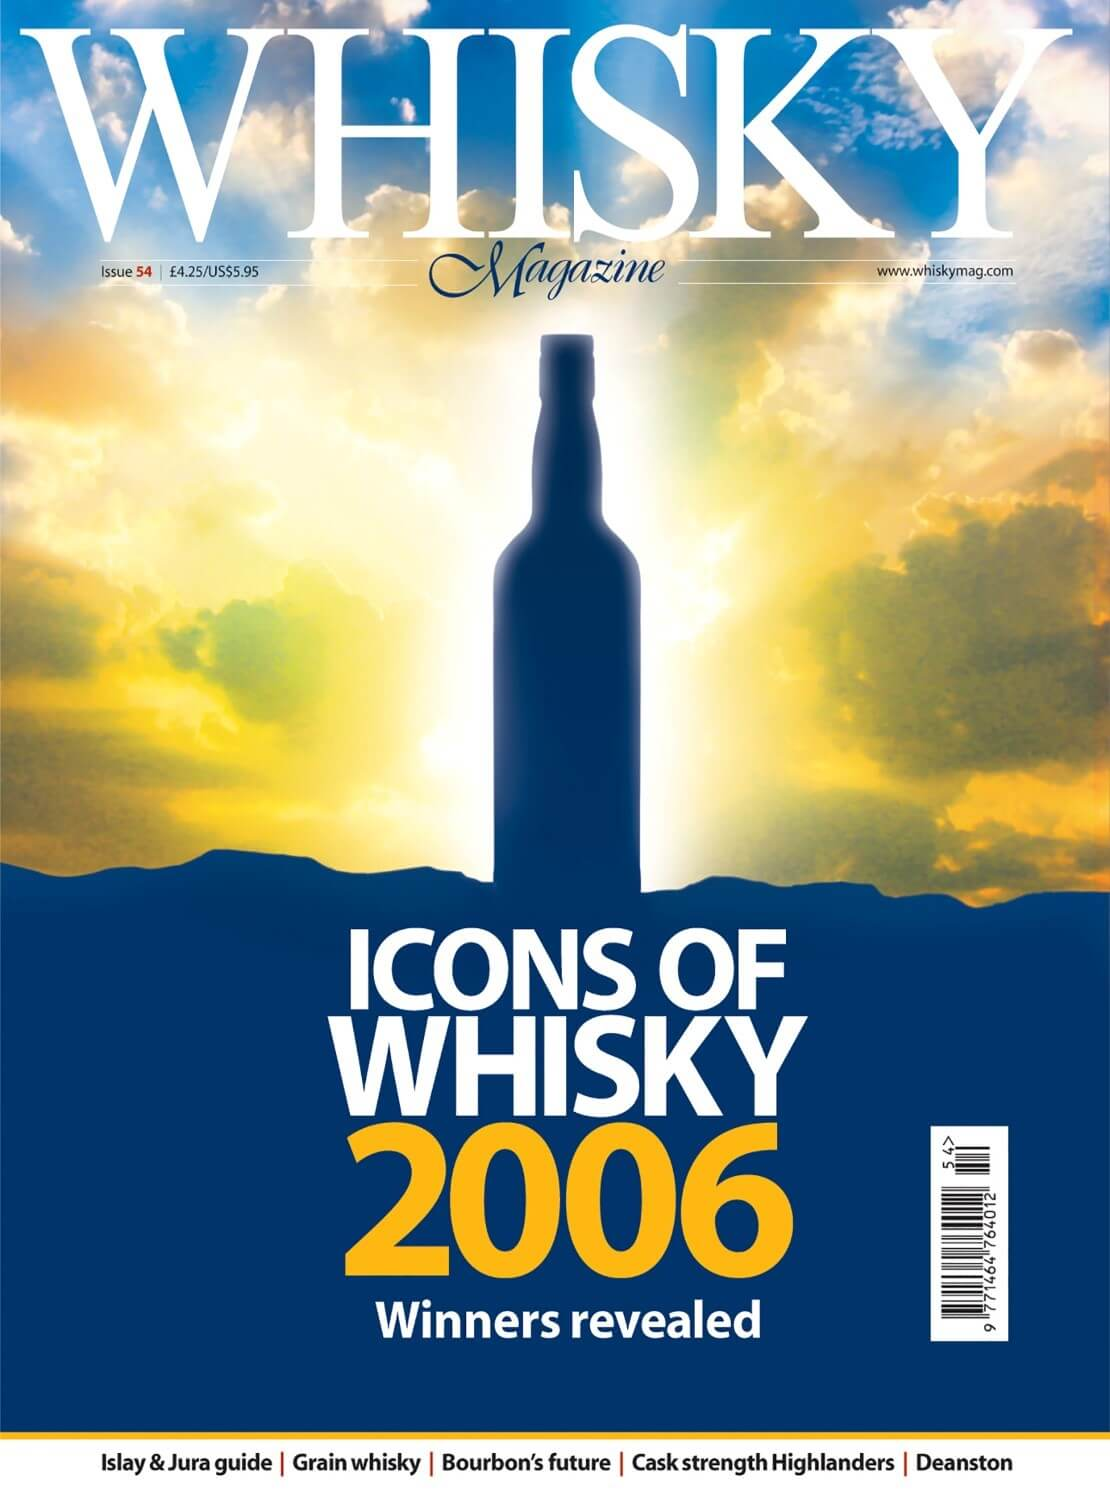 Icons of Whisky 2006 Islay & Jura guide Grain whisky Bourbon's future Cask strength Higlanders Deanston